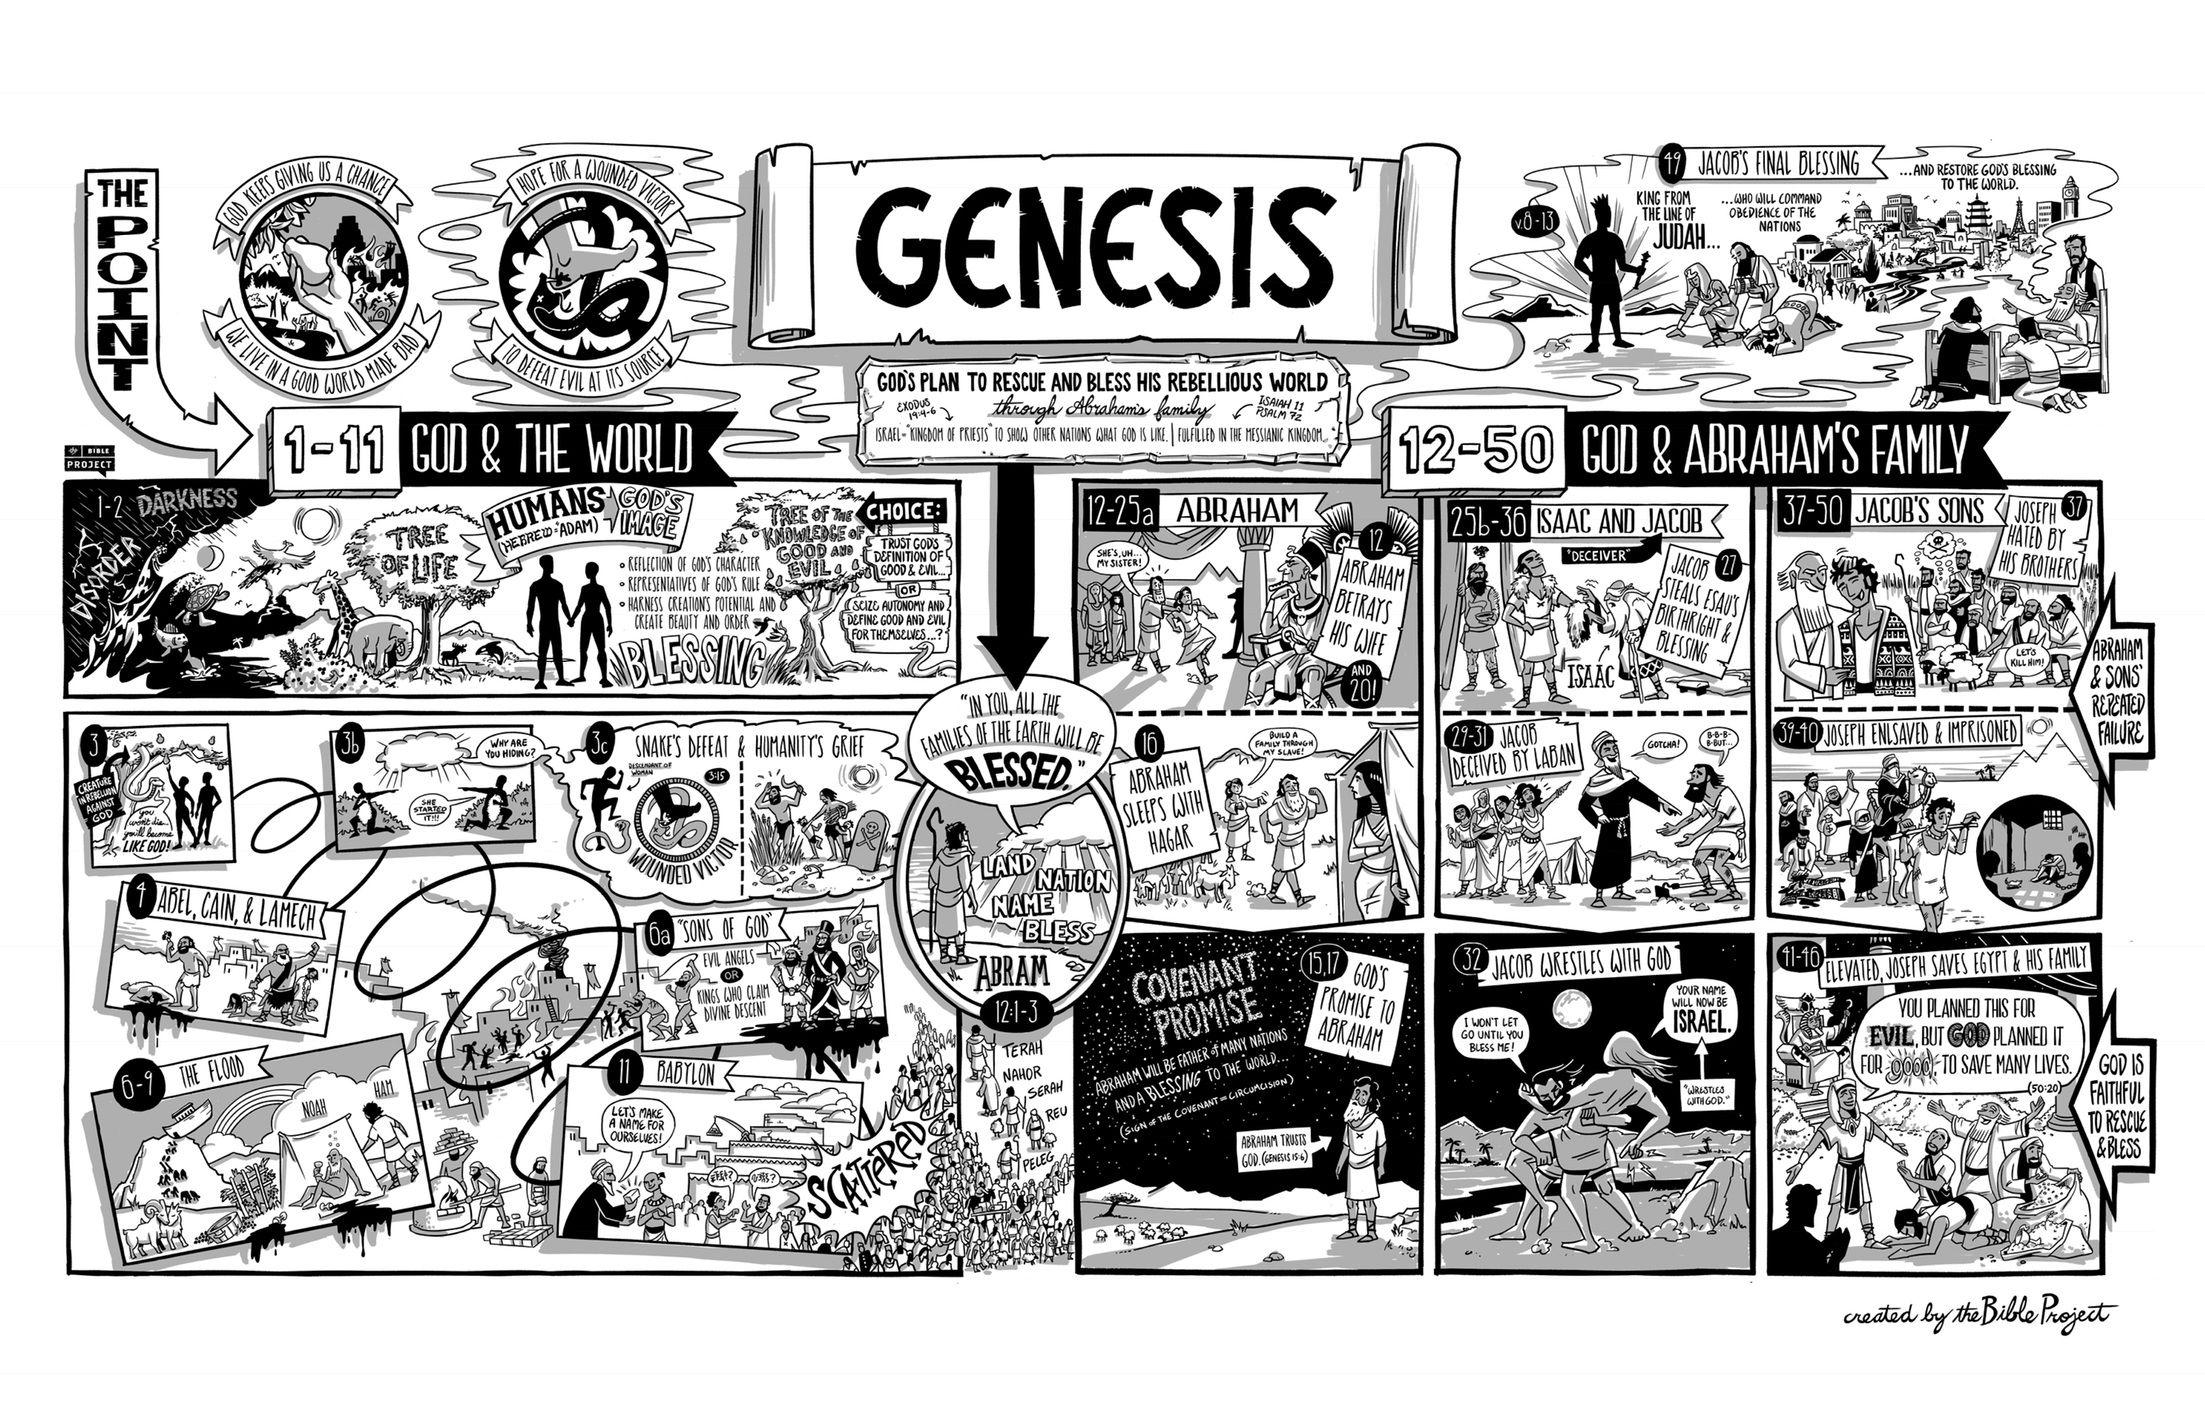 Outline of Genesis - truthsaves.org